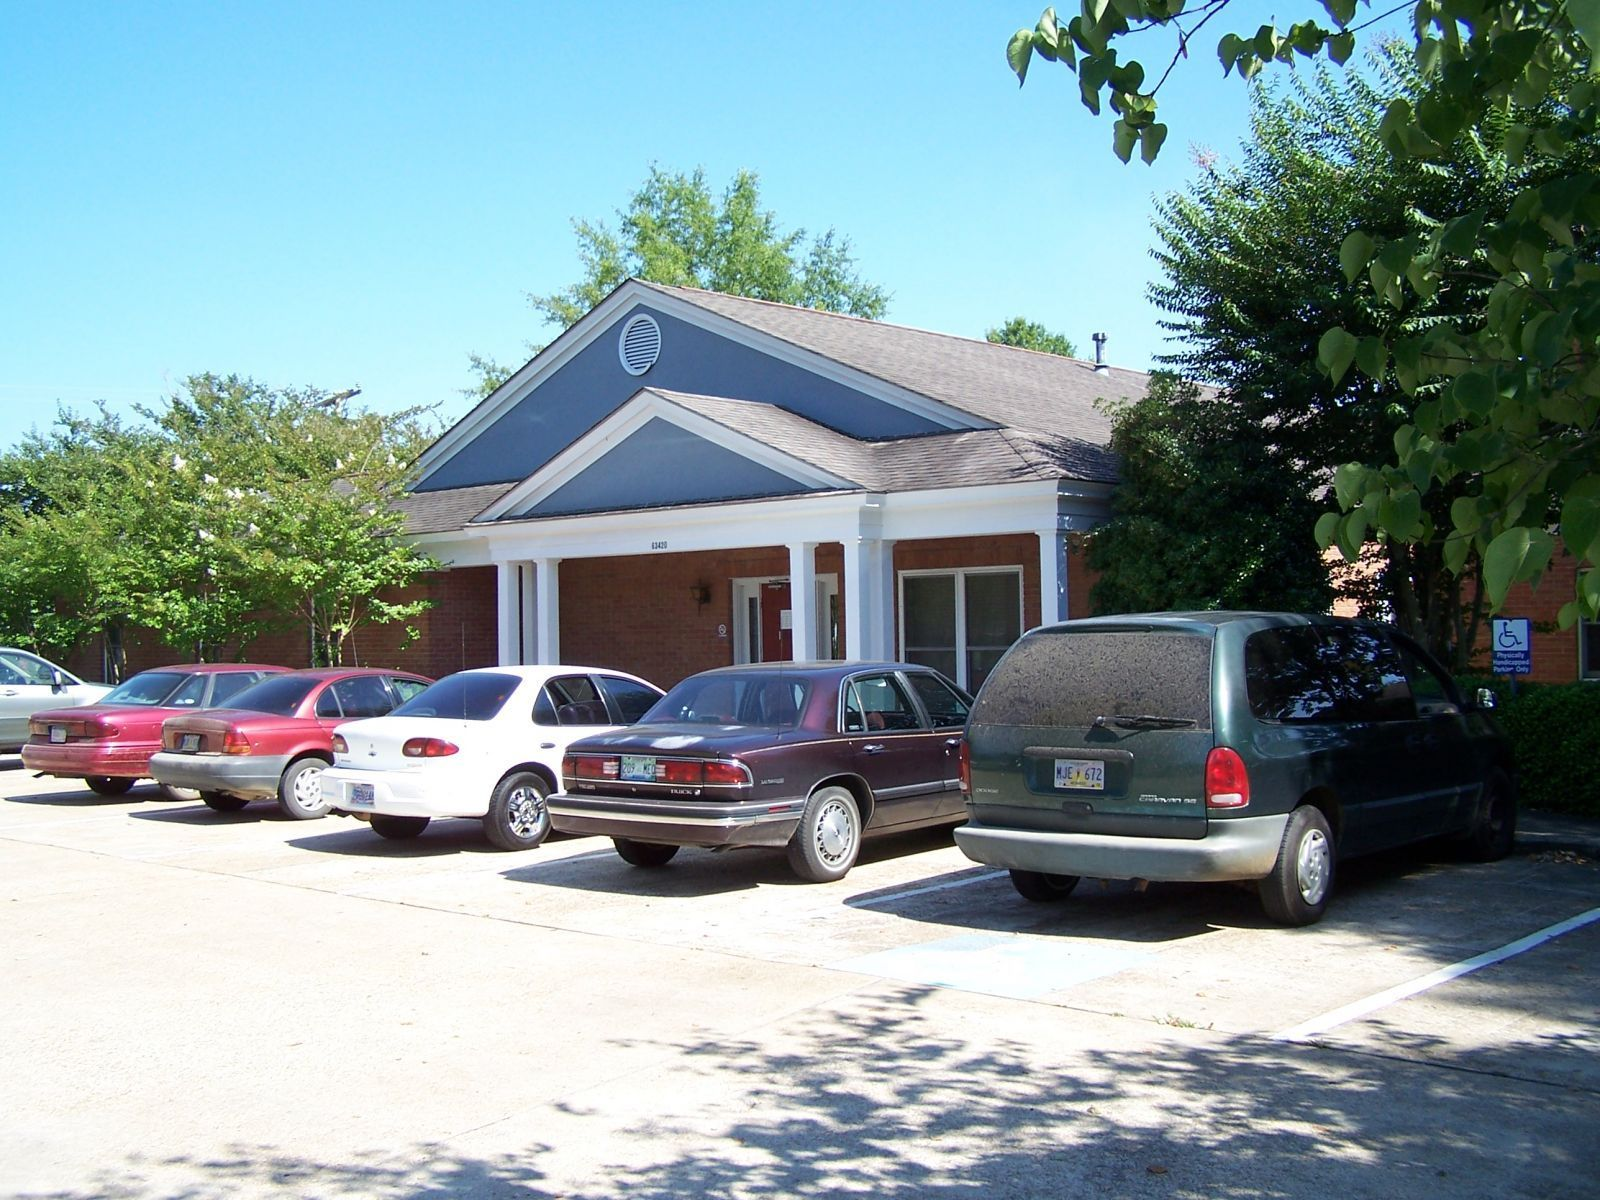 Smithville Clinic - Access Family Health Services